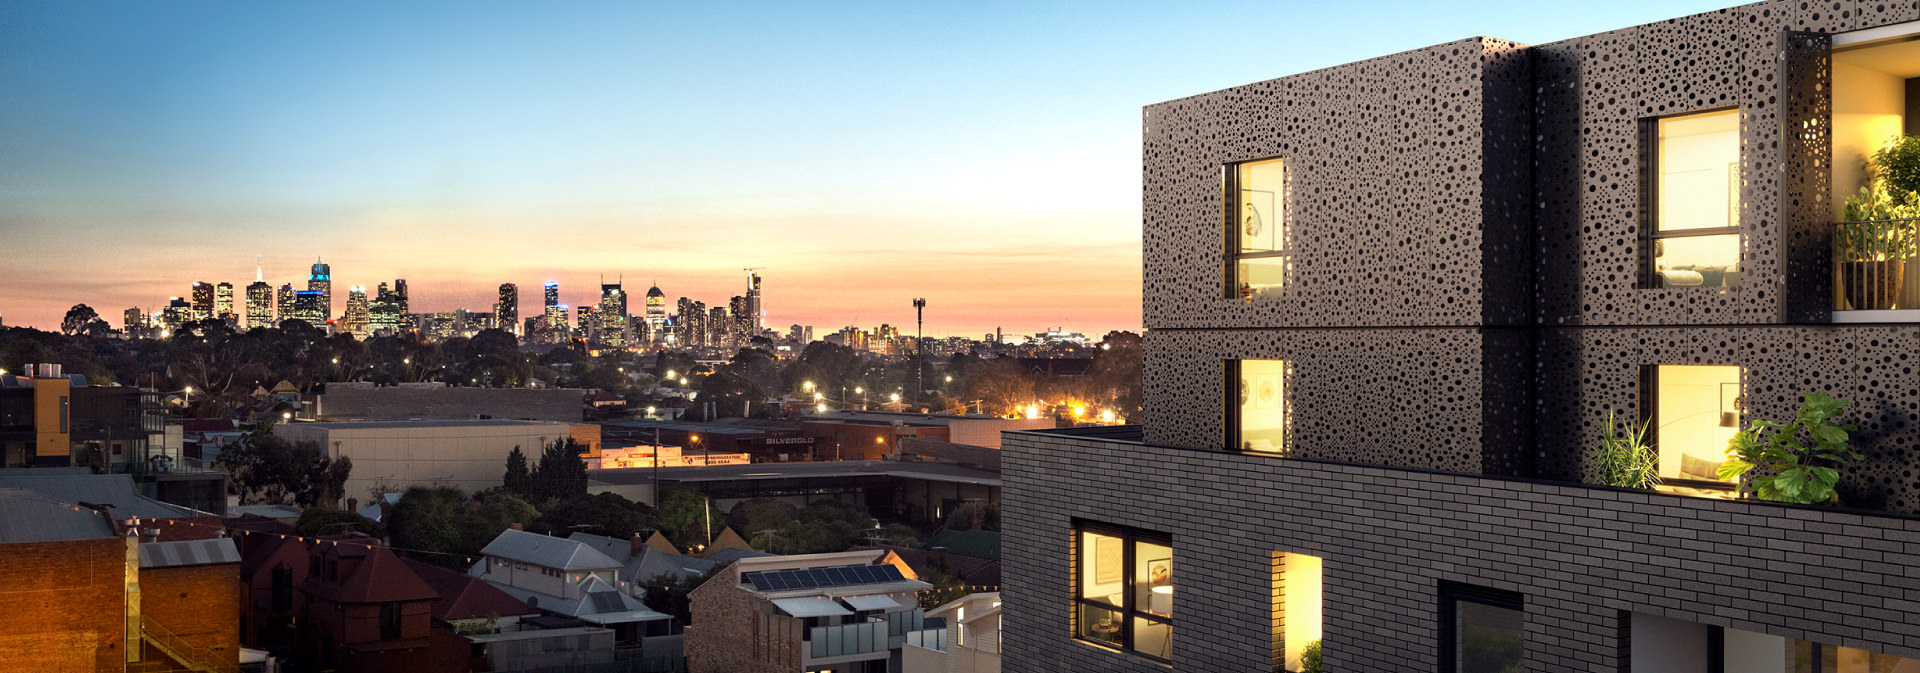 Cera Stribley Architecture Interior Design Pace of Northcote exterior city view